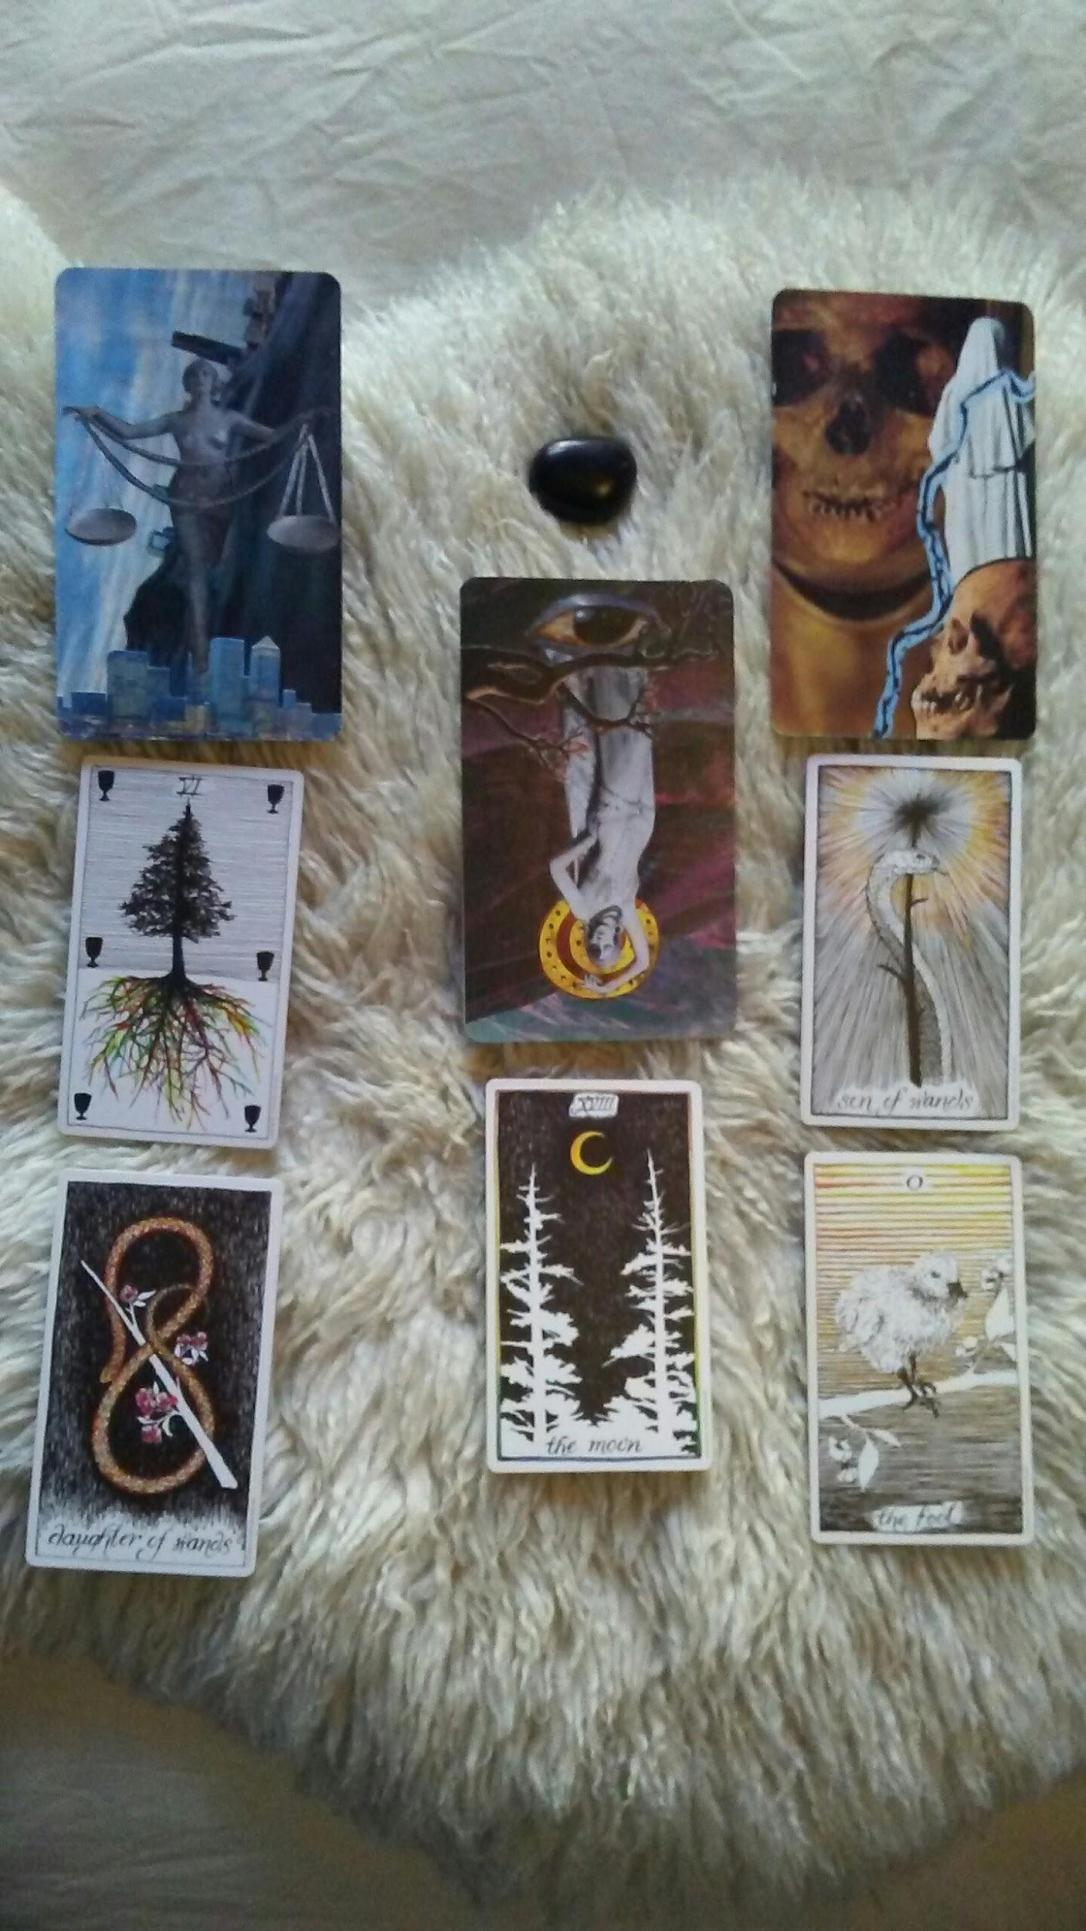 eight mixed tarot cards laid out in a spread with a black stone on a sheepskin